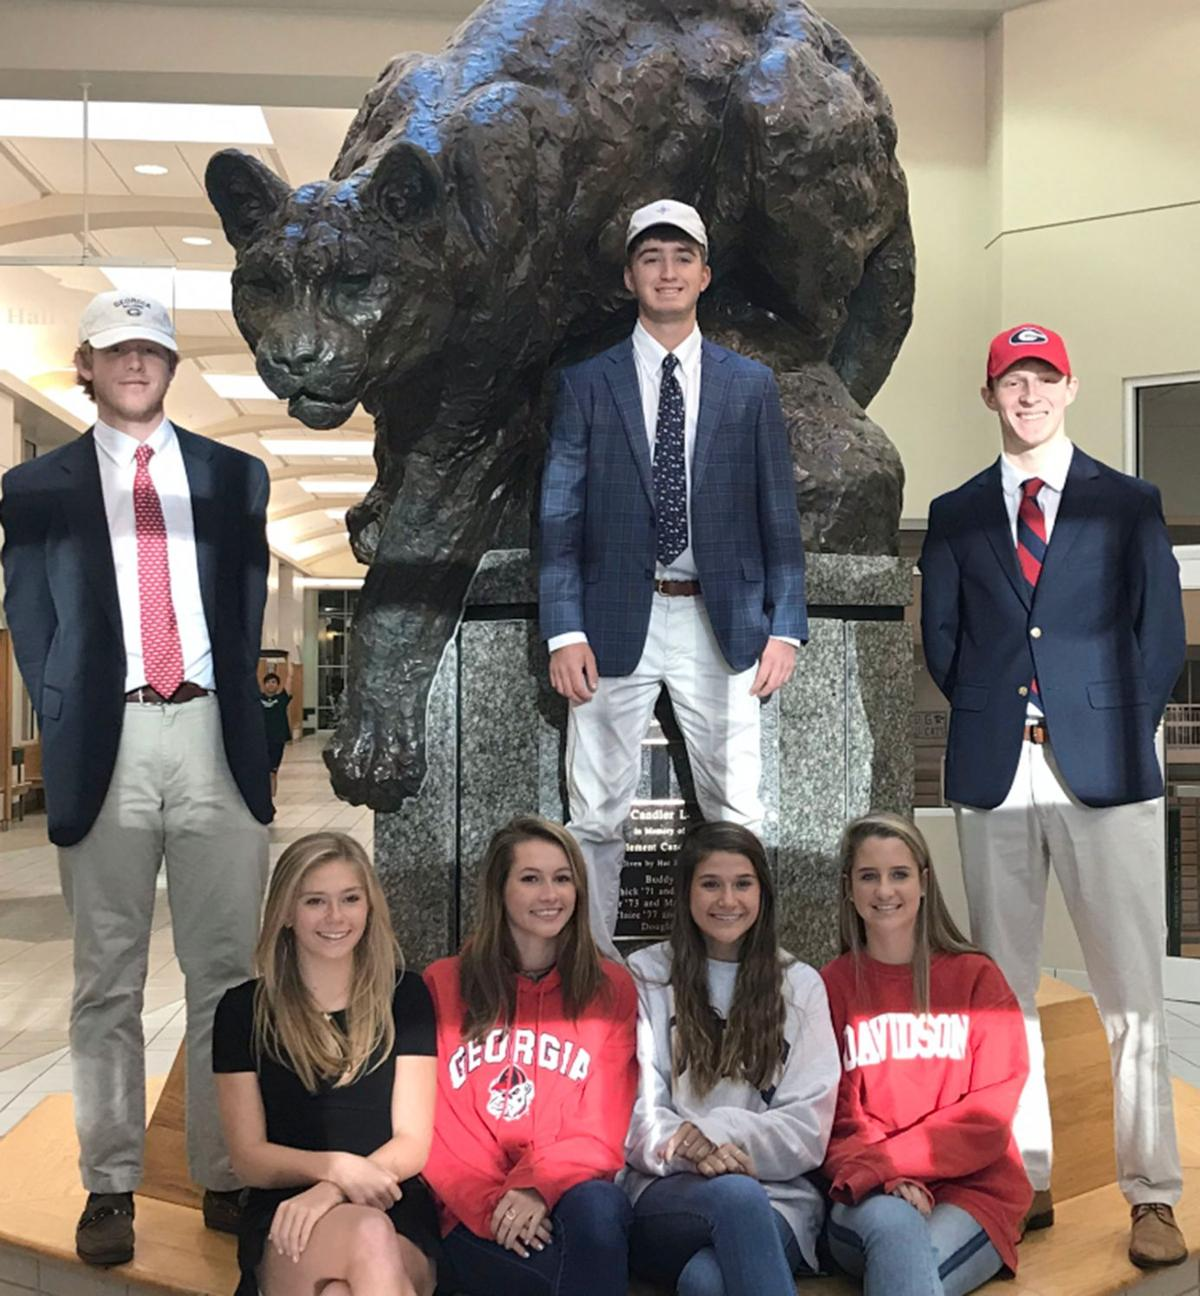 010120_MNS_Westminster_signees Parks Harber David Dickey Zachary Roe Alex Wagner Maggie Graham Riley Patton